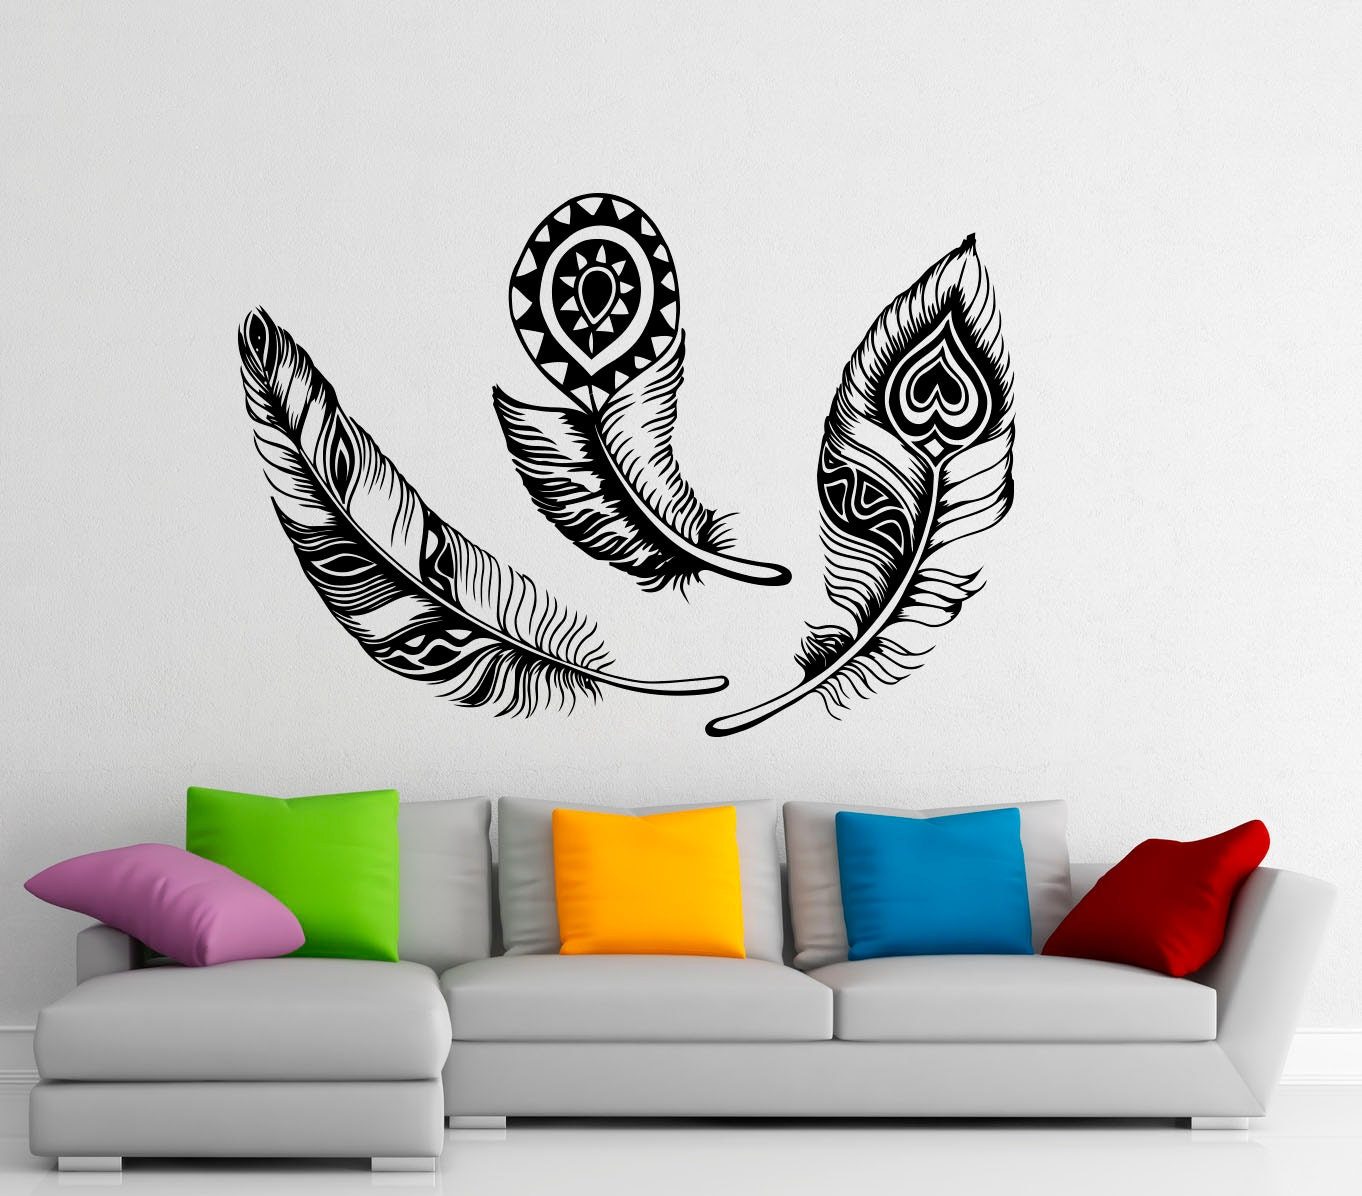 Wall Decor Bird Design : Feathers wall decal vinyl stickers bird plumage patterns home